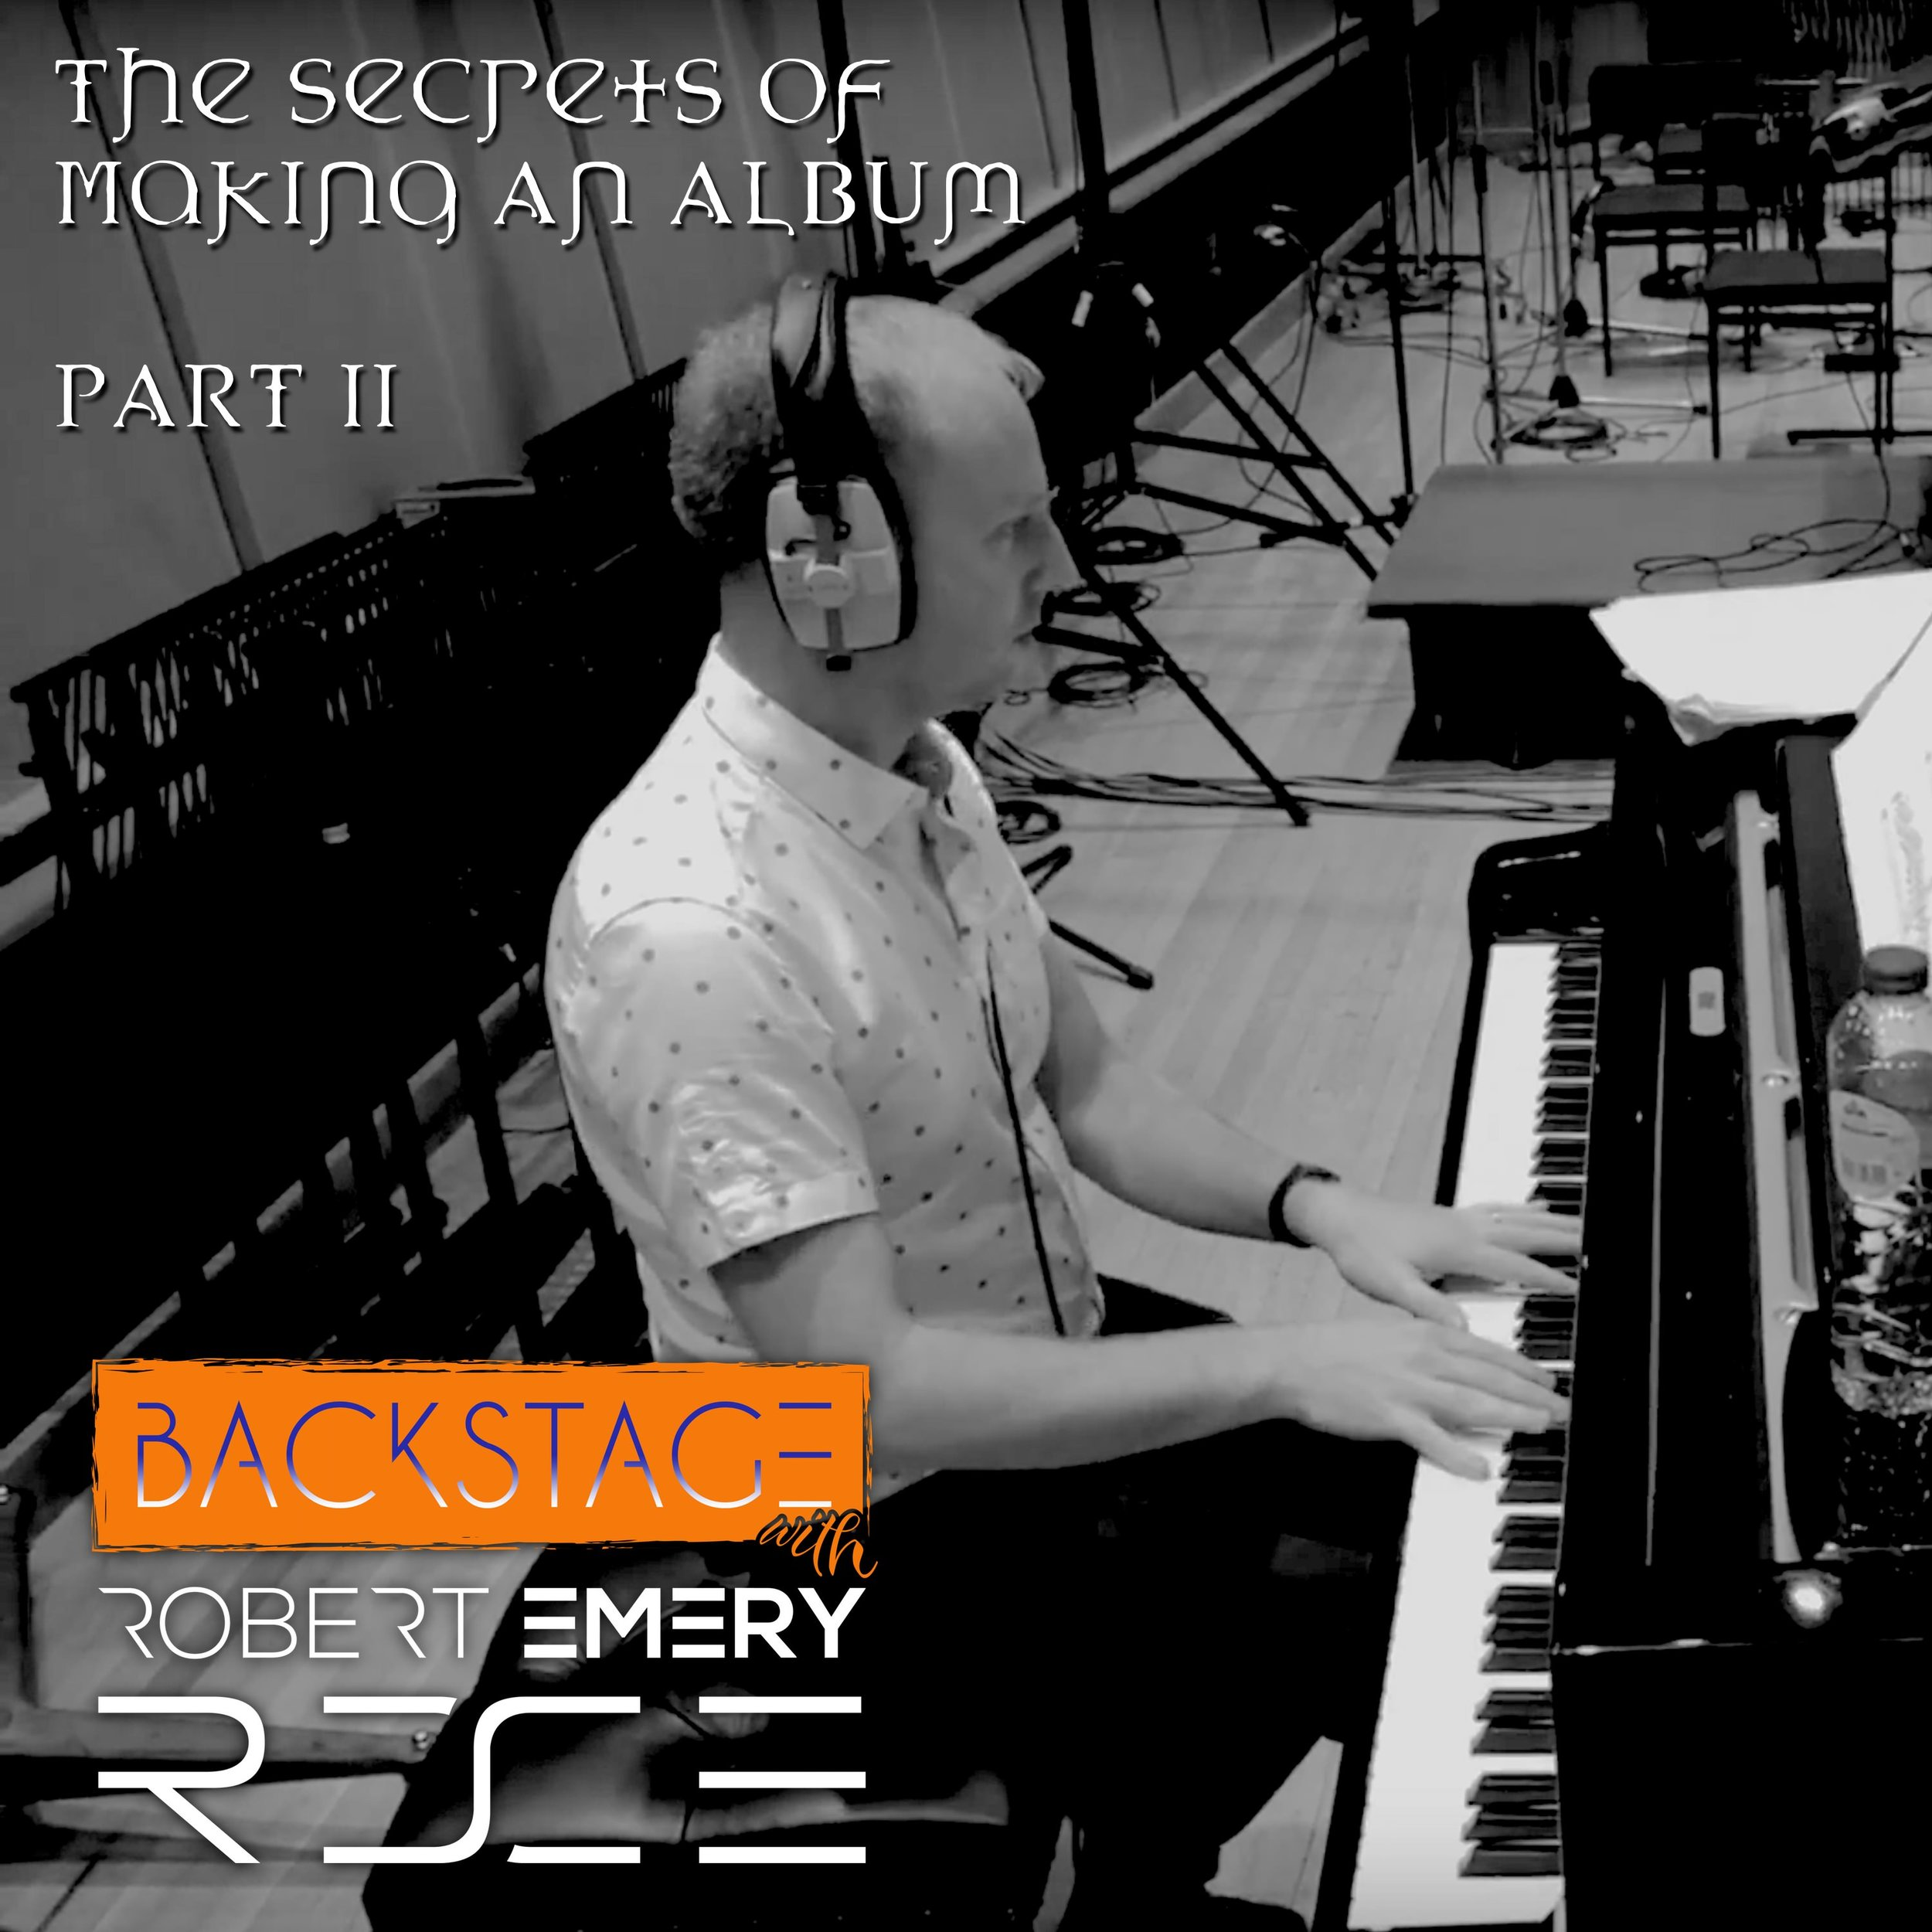 Robert Emery: The secrets of making an album